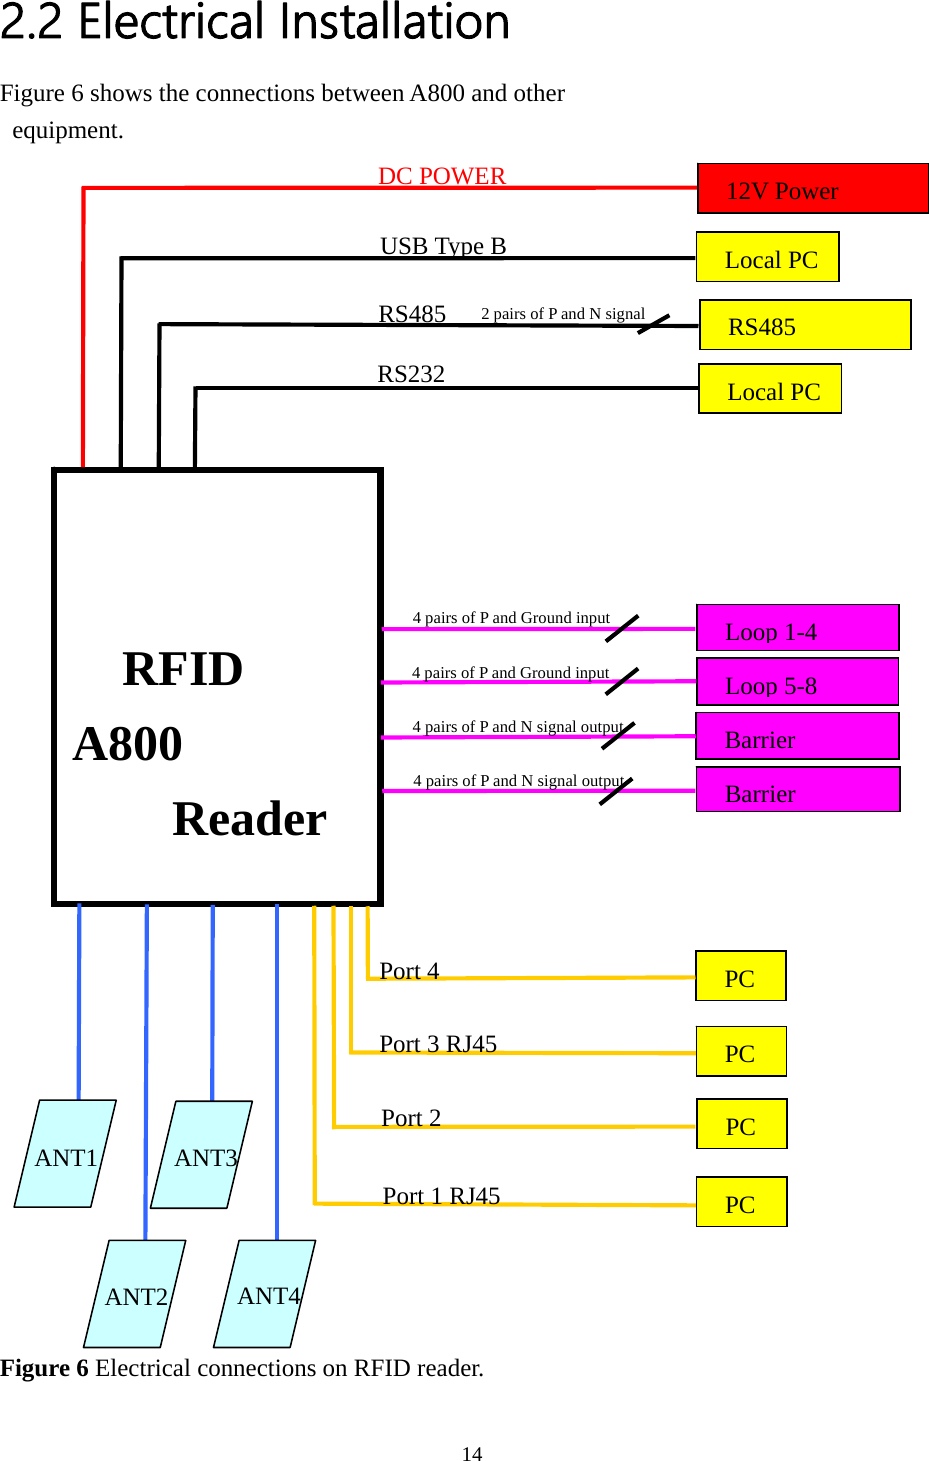 Ydt Technology A800 Rfid Reader User Manual Rev Rj45 Wiring Diagram Pc To 22 Electrical Installation Figure 6 Shows The Connections Between And Other Equipment